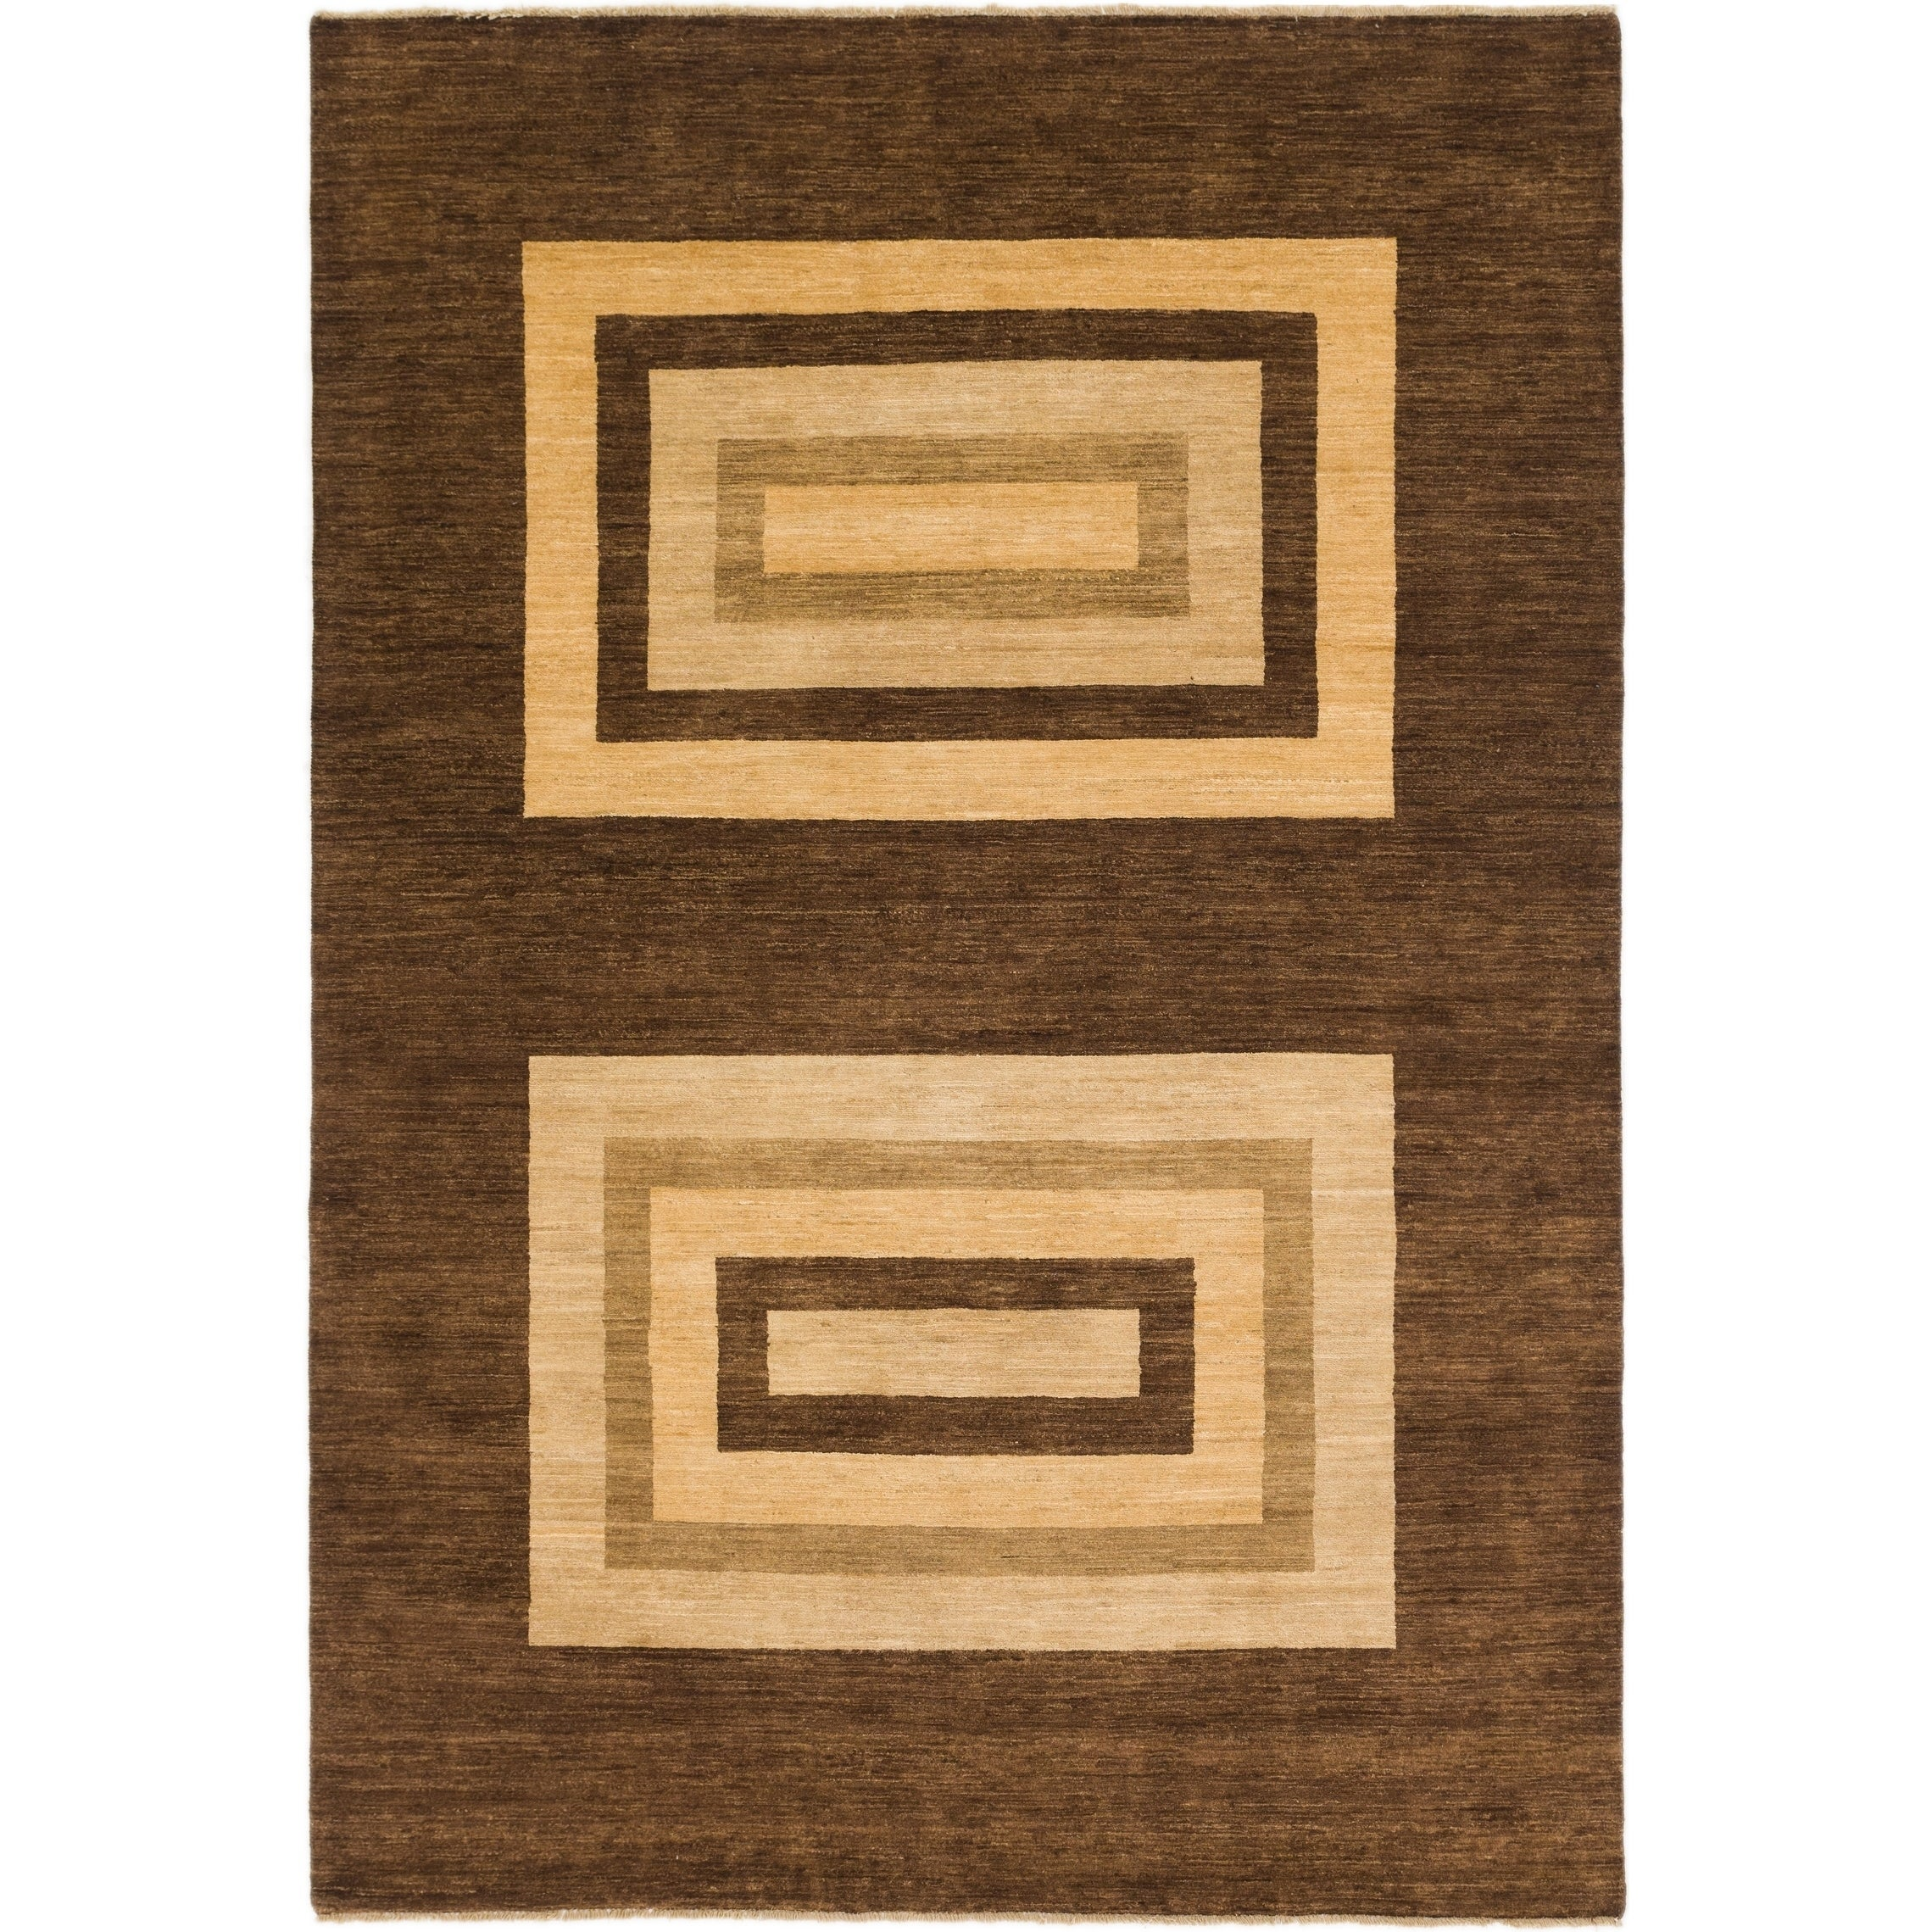 Hand Knotted Kashkuli Gabbeh Wool Area Rug - 6 10 x 9 10 (Brown - 6 10 x 9 10)